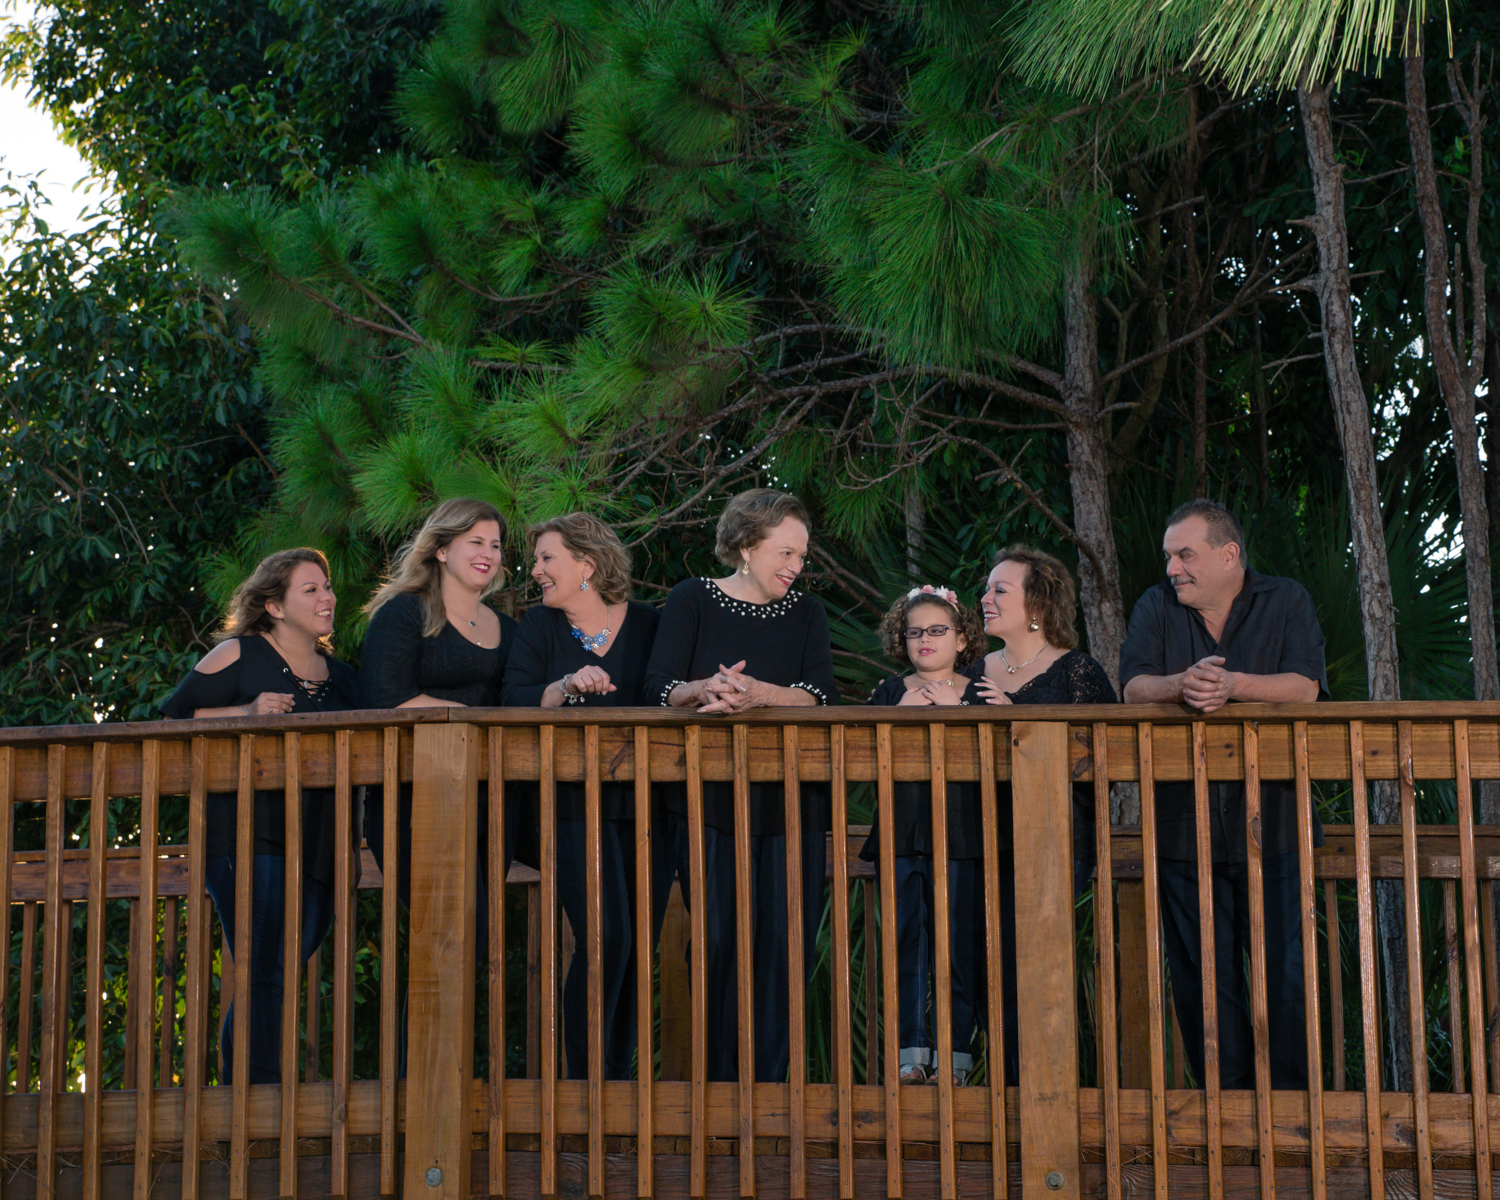 Award-winning family photography in South Florida.